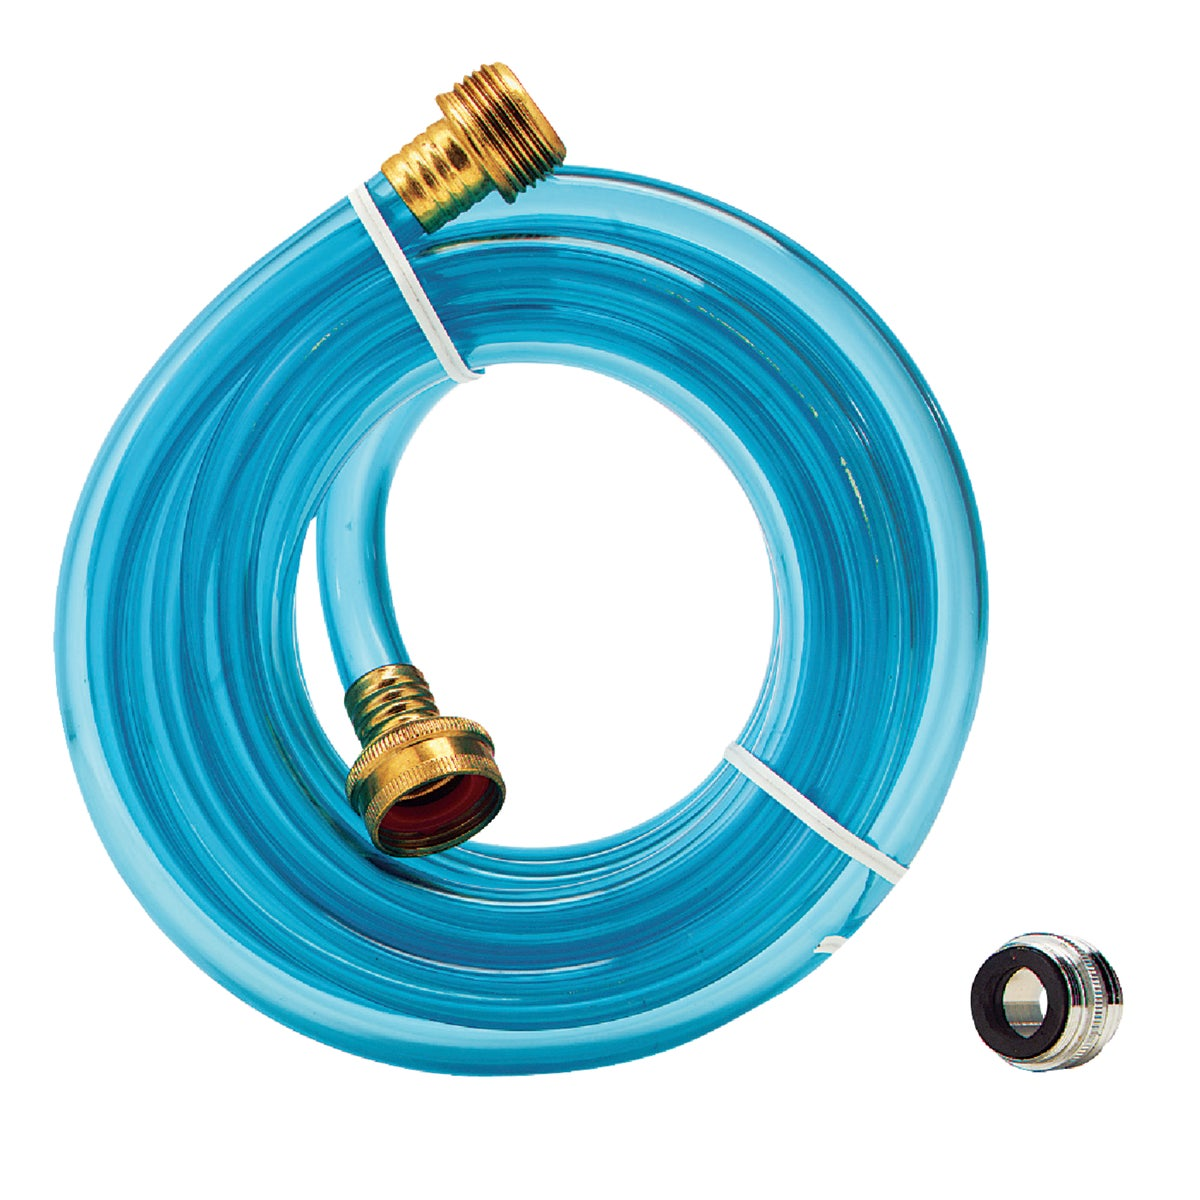 10' HOSE&FAUCET ADAPTER - 157 by G T Water Prod